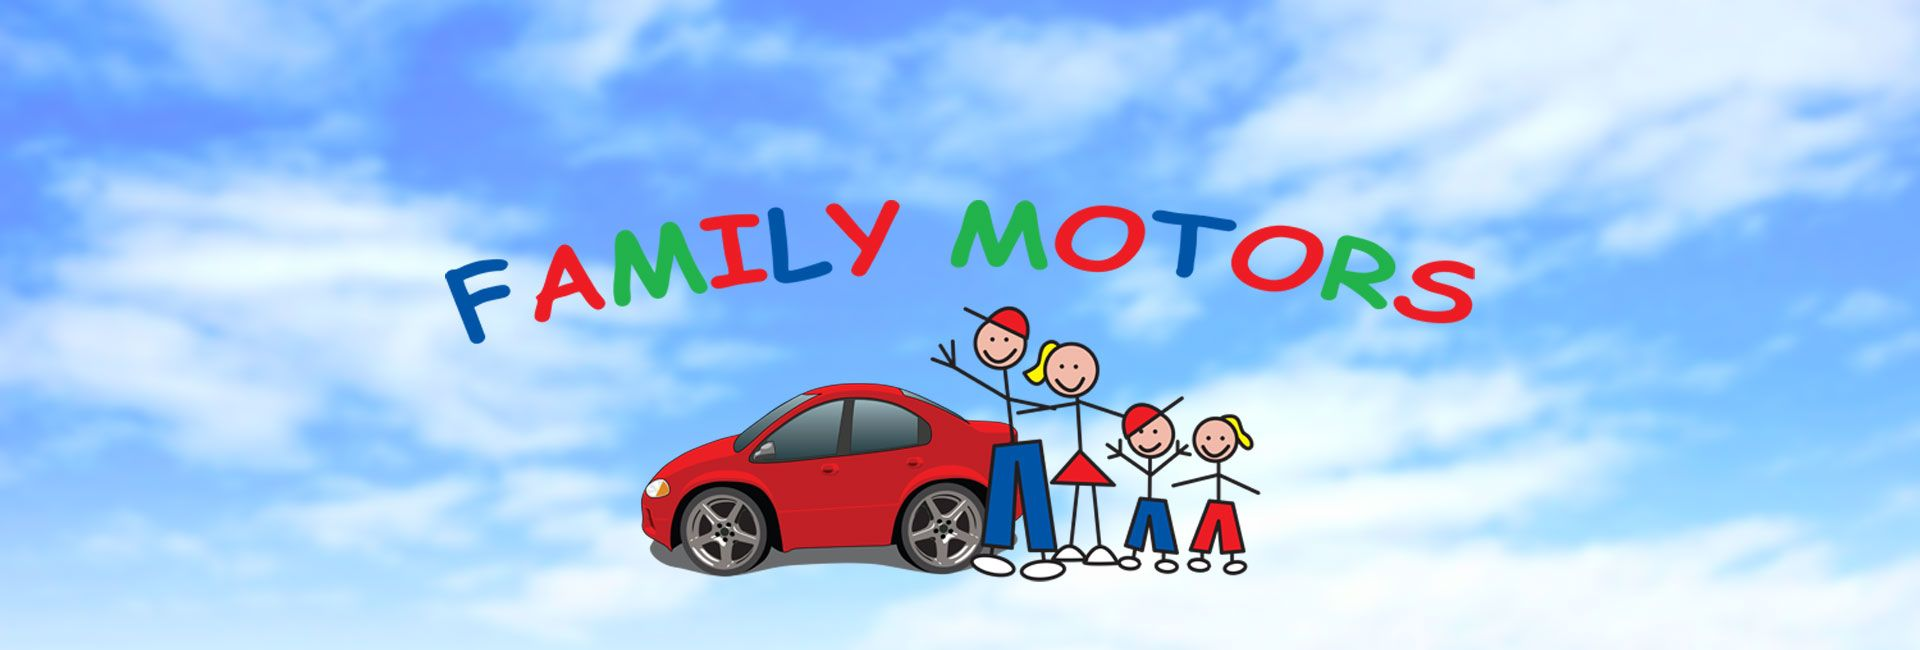 Family Motors Liquidation Sale